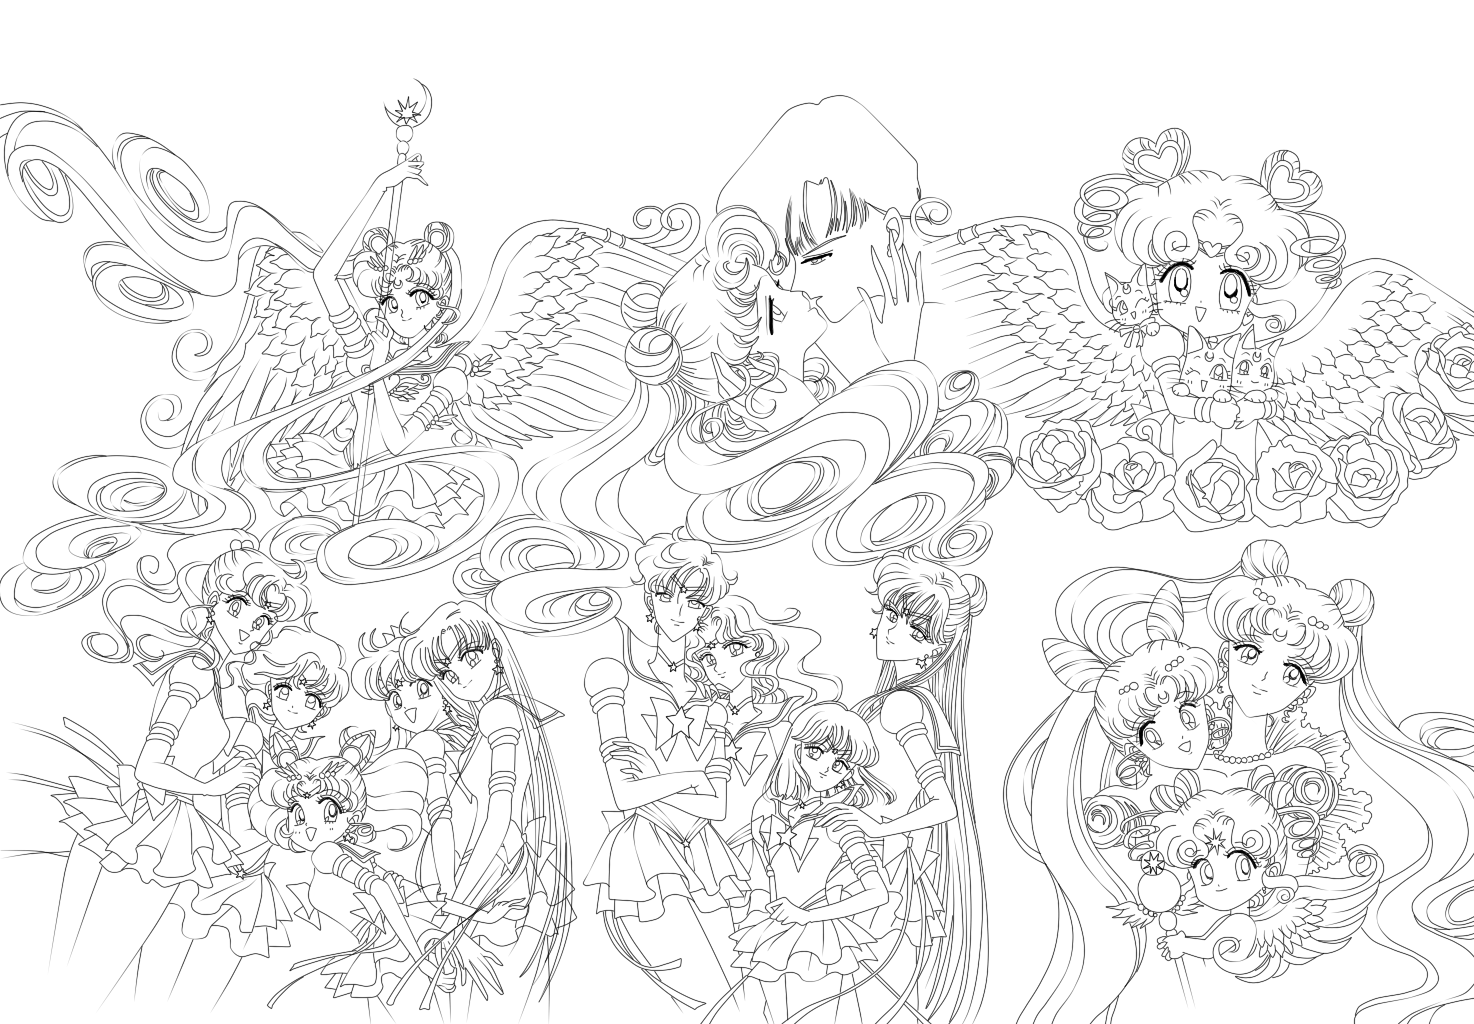 Sailor Moon Coloring page!!!! (With images) | Sailor moon coloring ...